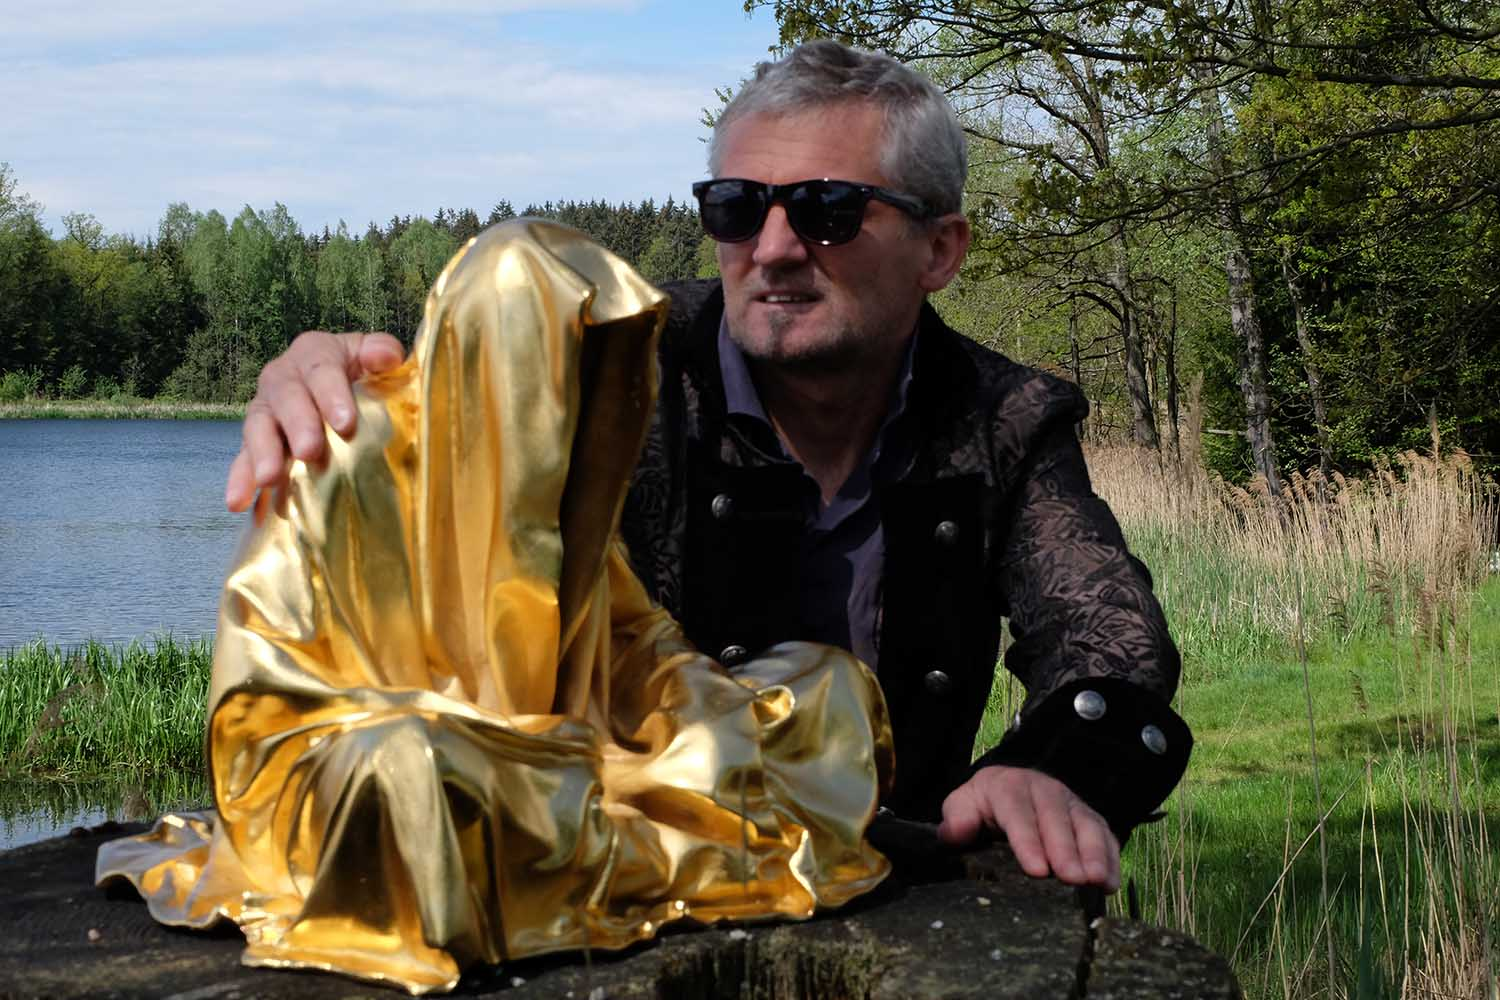 guardians of time by manfred kielnhofer kili contemporary art fine arts modern design artist sculpture statue form shape faceless gold silver bronze stone marble show 2199